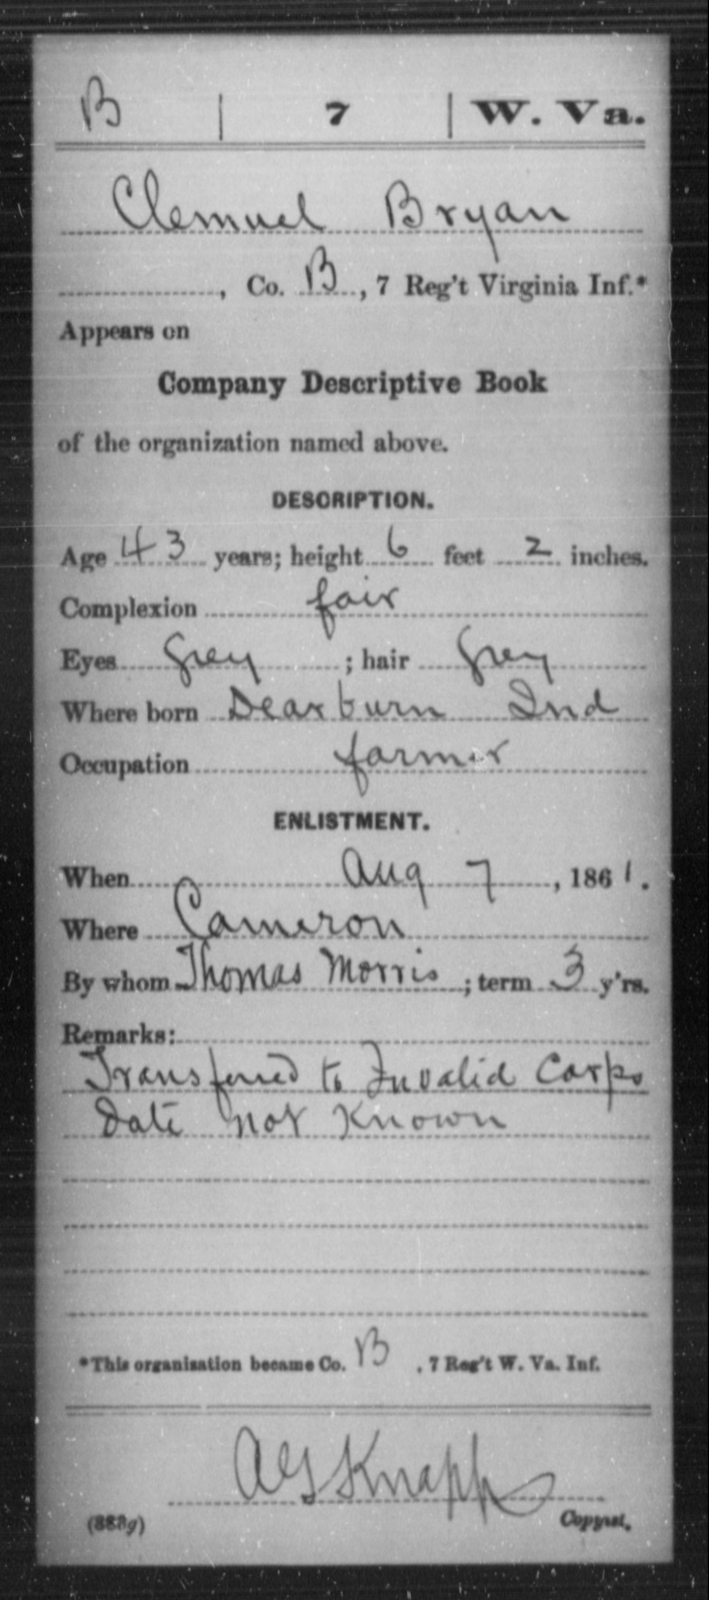 Bryan, Clemuel - Age 43, Year: 1861 - Miscellaneous Card Abstracts of Records - West Virginia